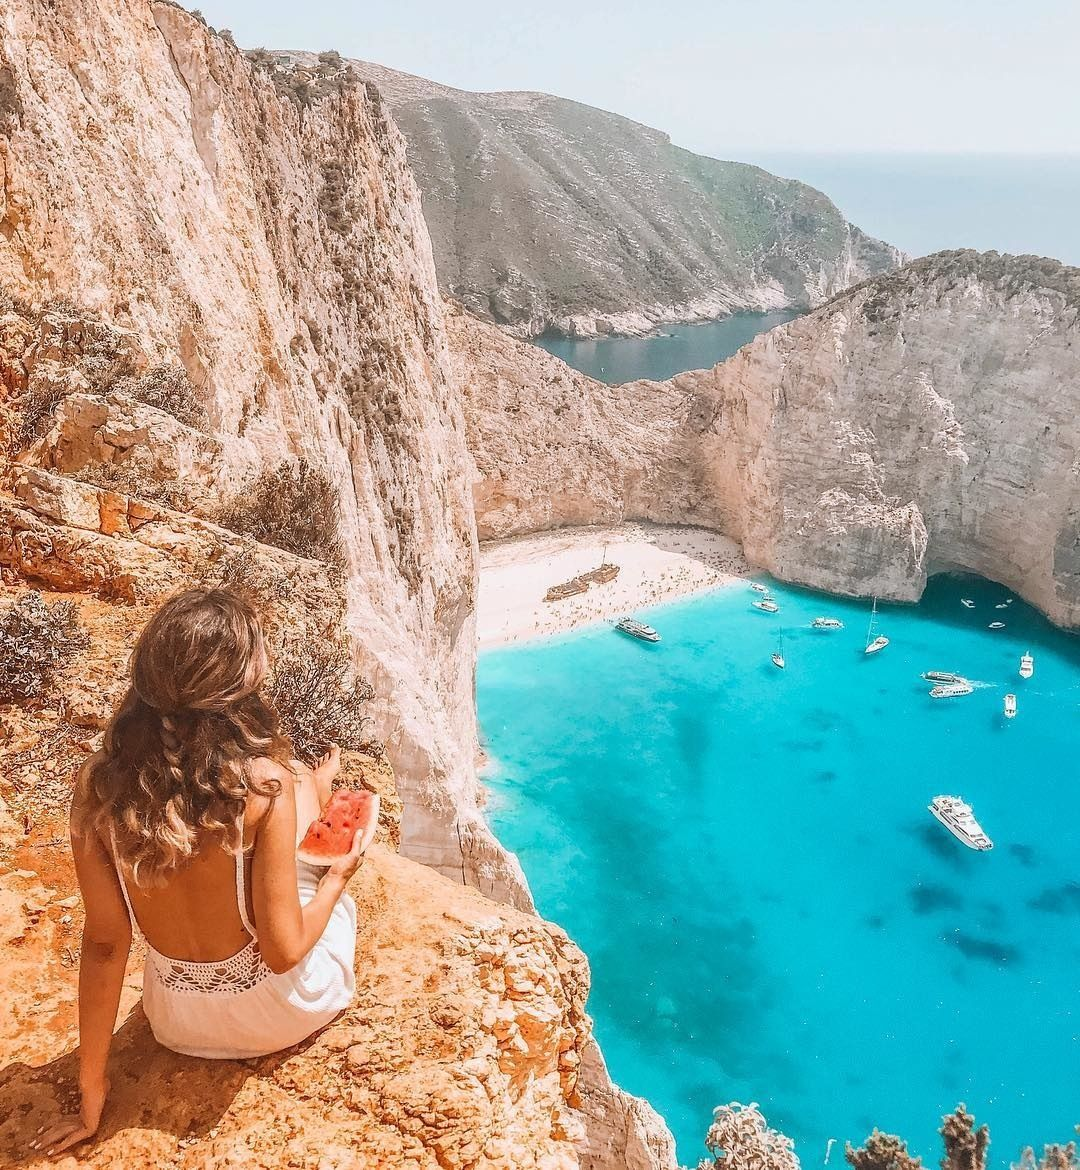 The Discoverer On Instagram Now Discovering The Navagio Beach In Greece With Callia M Navagio Beach Or Shipwreck Beach Is An E Instagram Nice View Beach